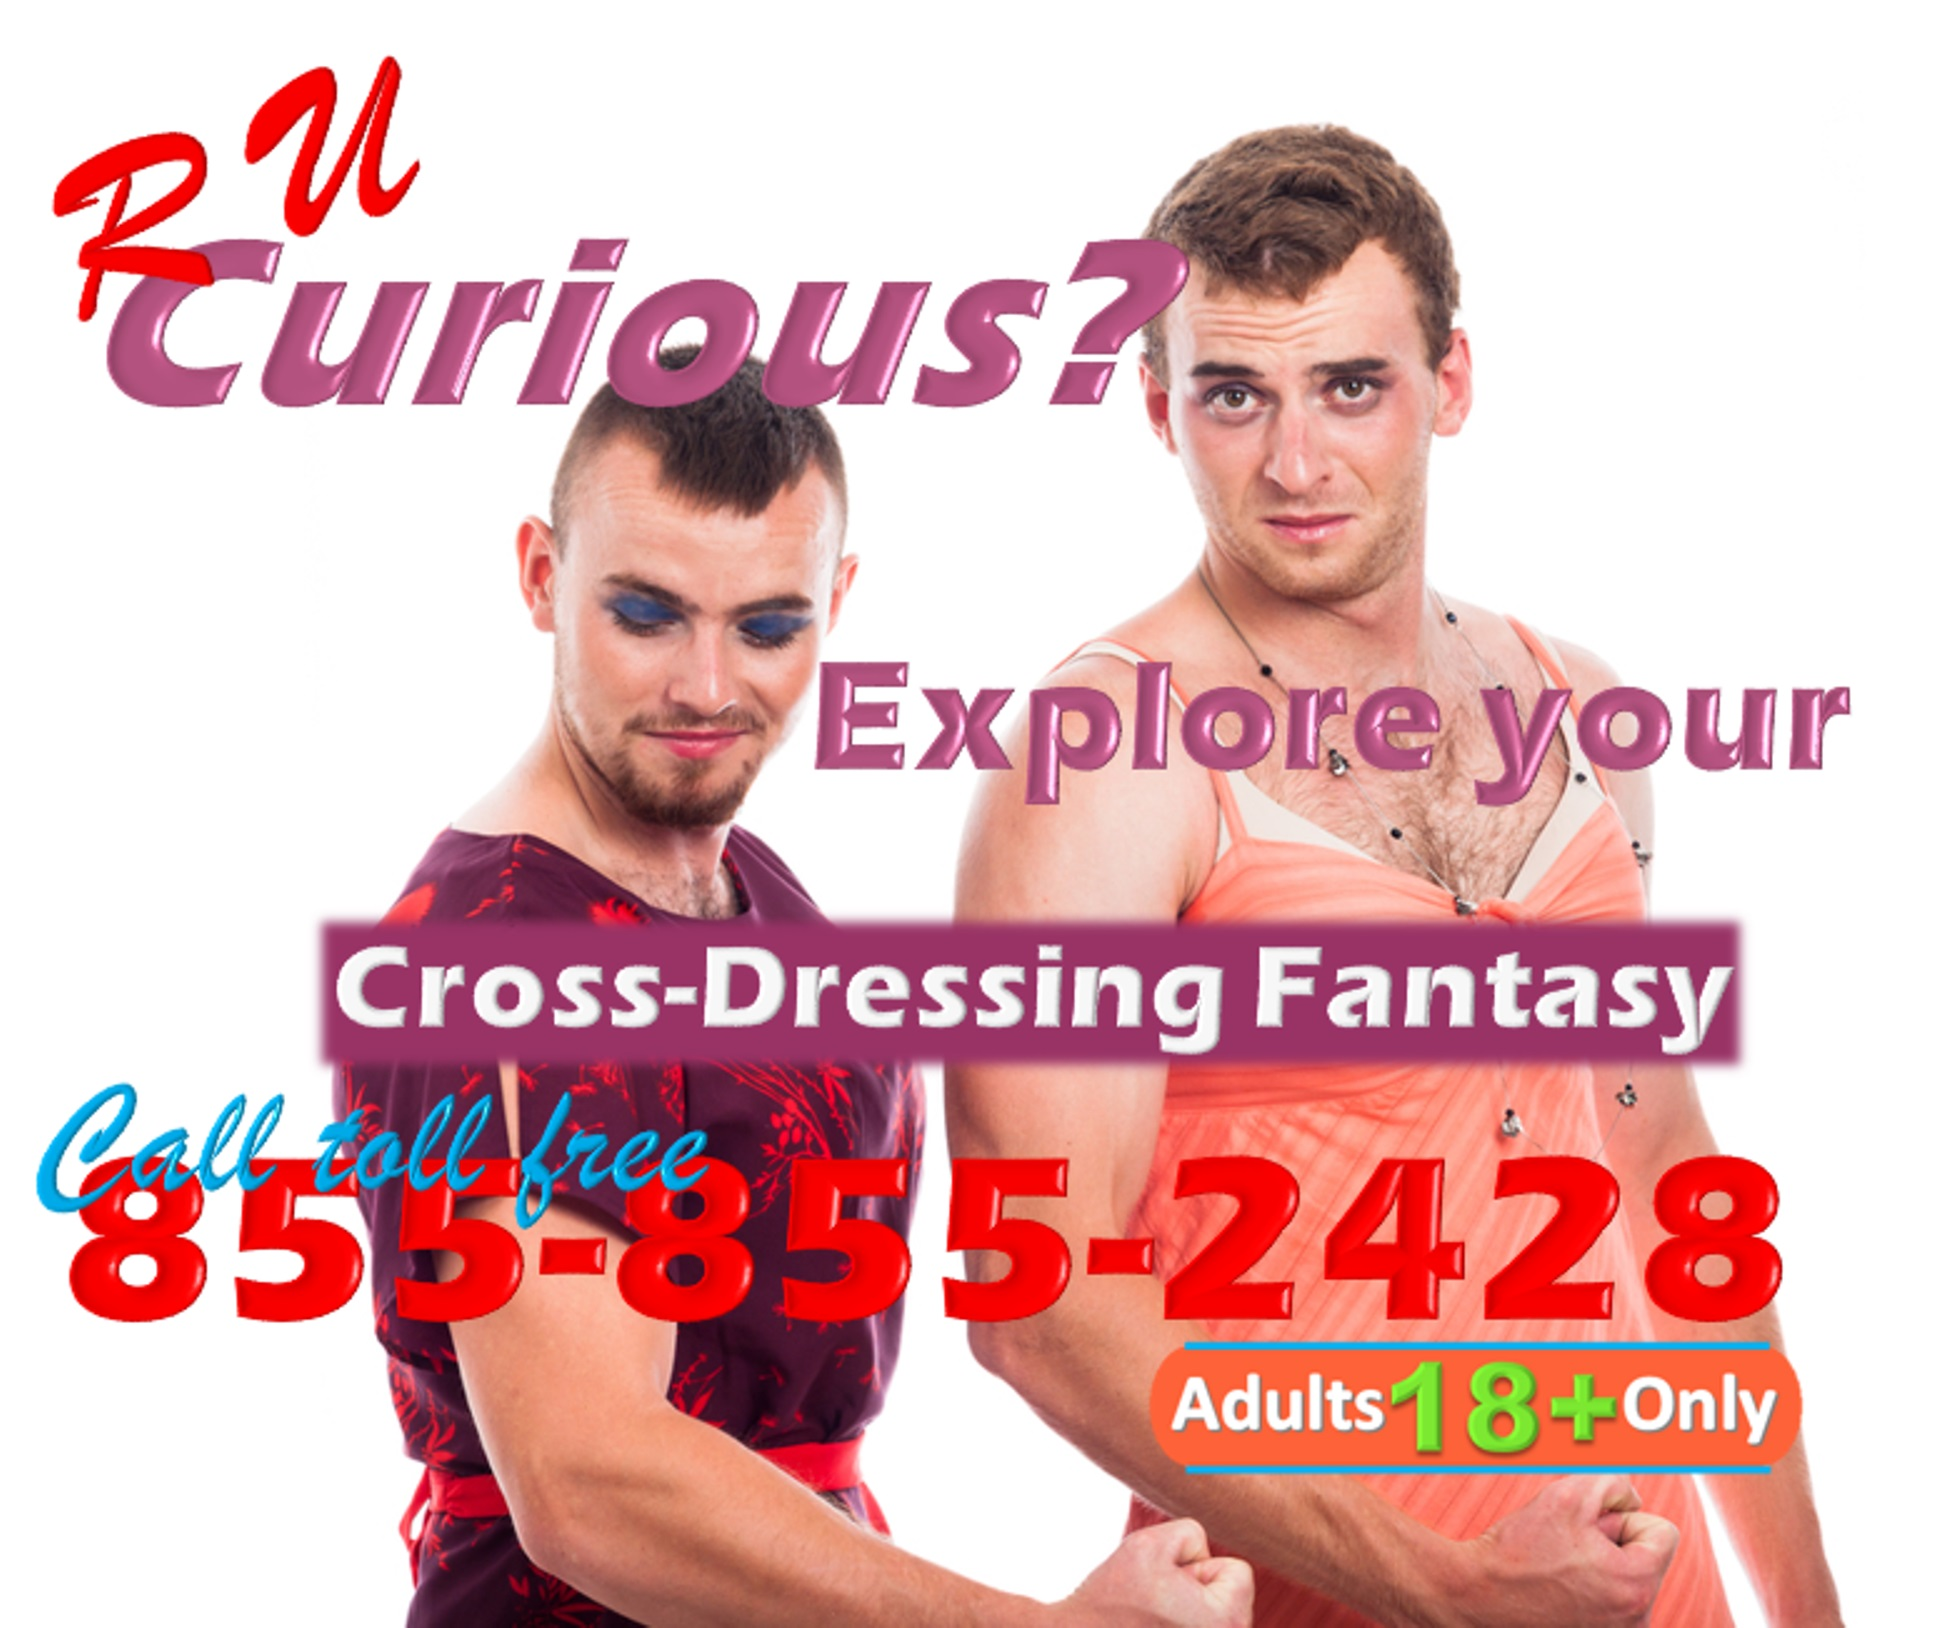 online dating site gay Gay online dating scams are booming in russia read this article and get advice from our expert russian private investigators on how to stay safe.